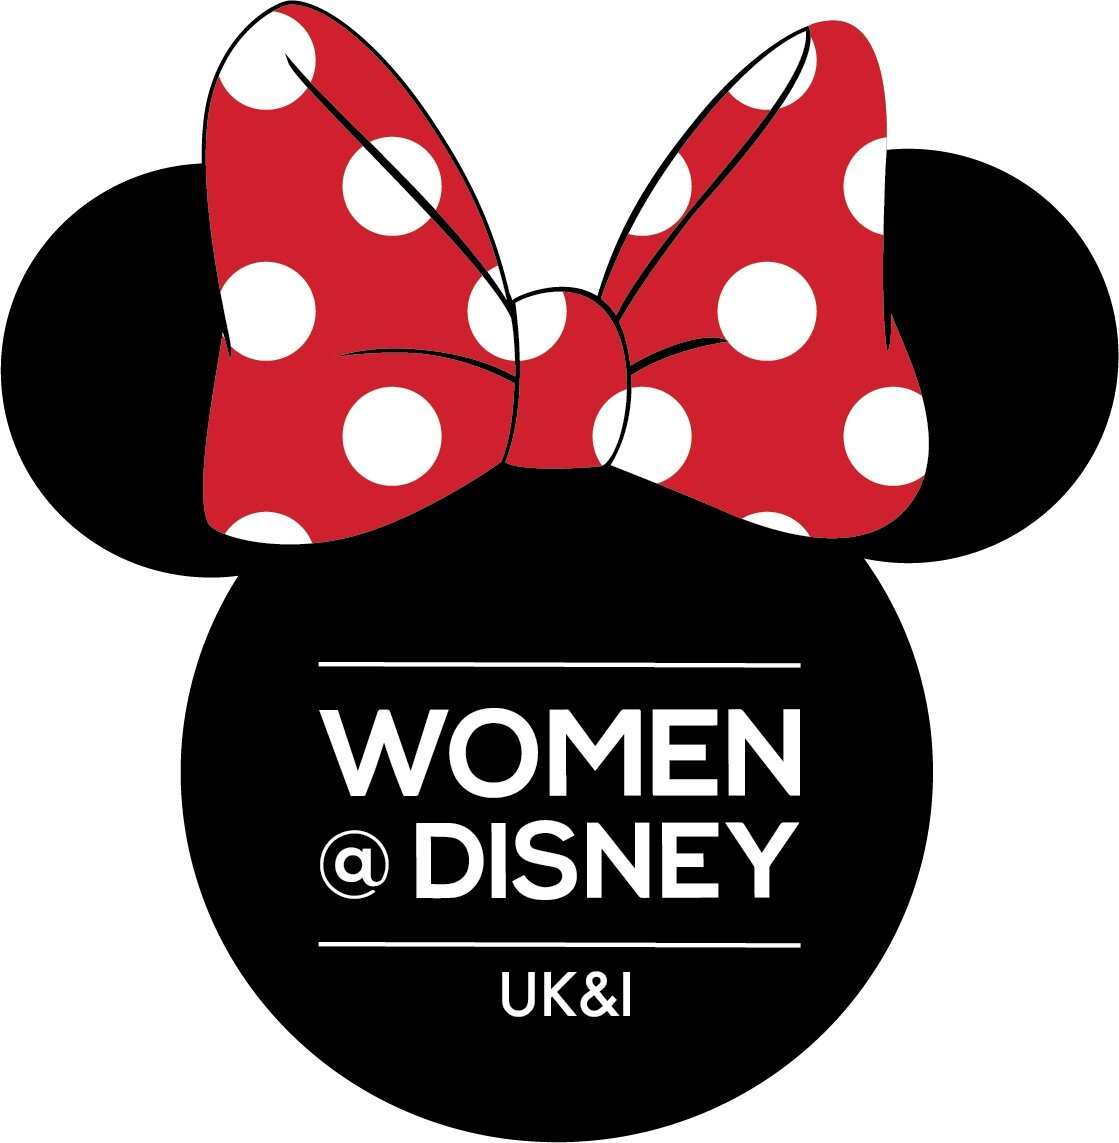 Women@Disney UK&Ireland - Women@Disney UK&Ireland is an employee resource group within The Walt Disney Company. Their mission is to equip and motivate women at Disney to build impactful careers. They have chosen to support Global Girl Project as part of this commitment.